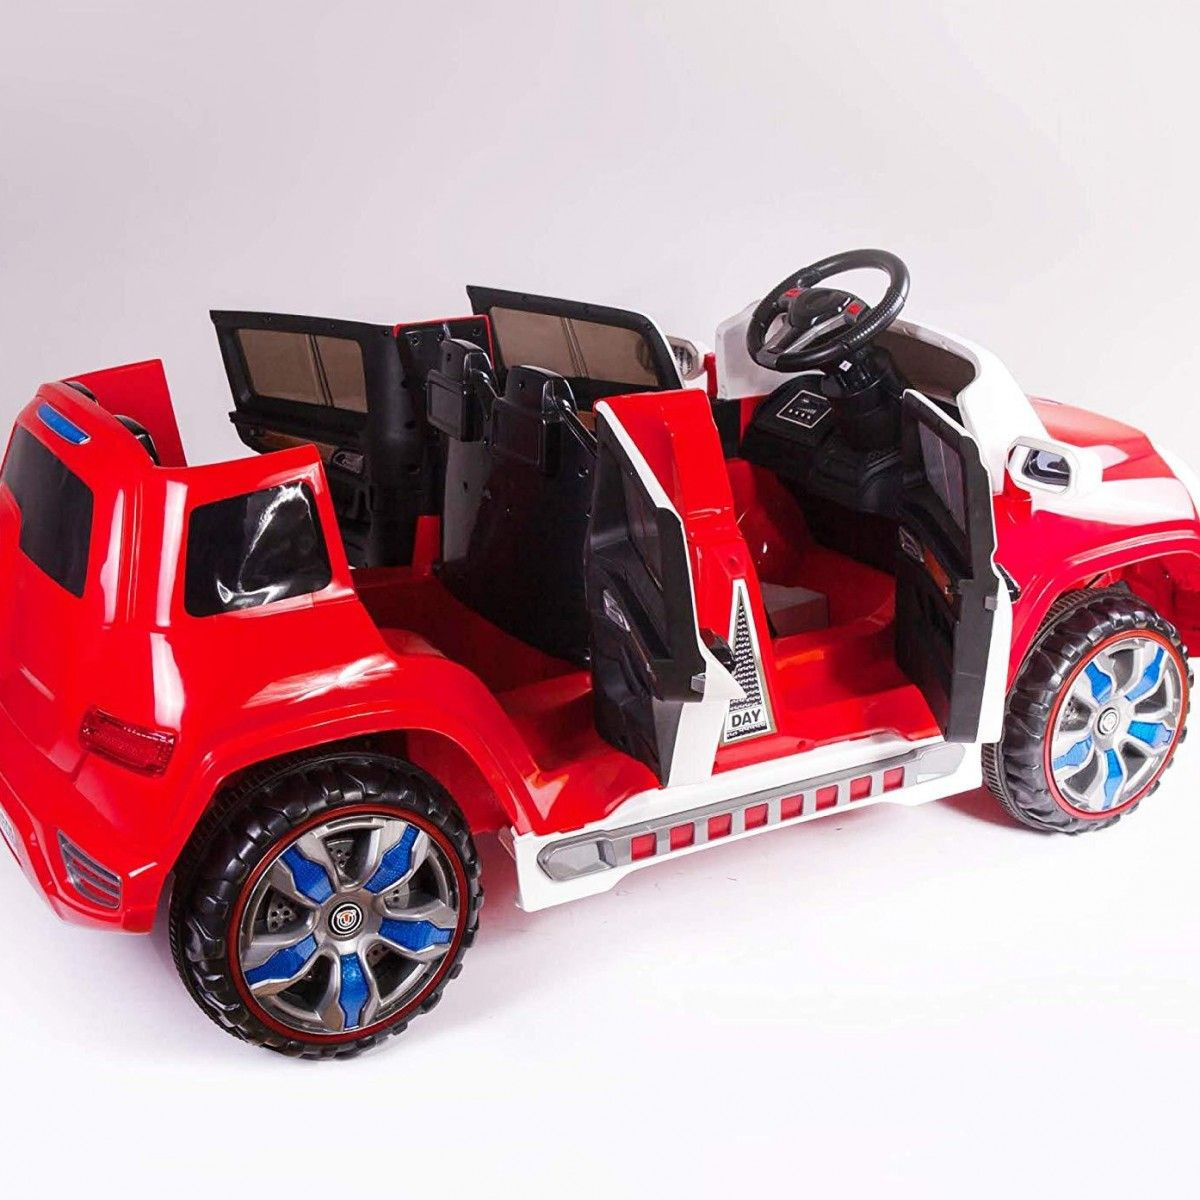 Fresh Electric Cars for Kids 4 Seater Toy cars for kids